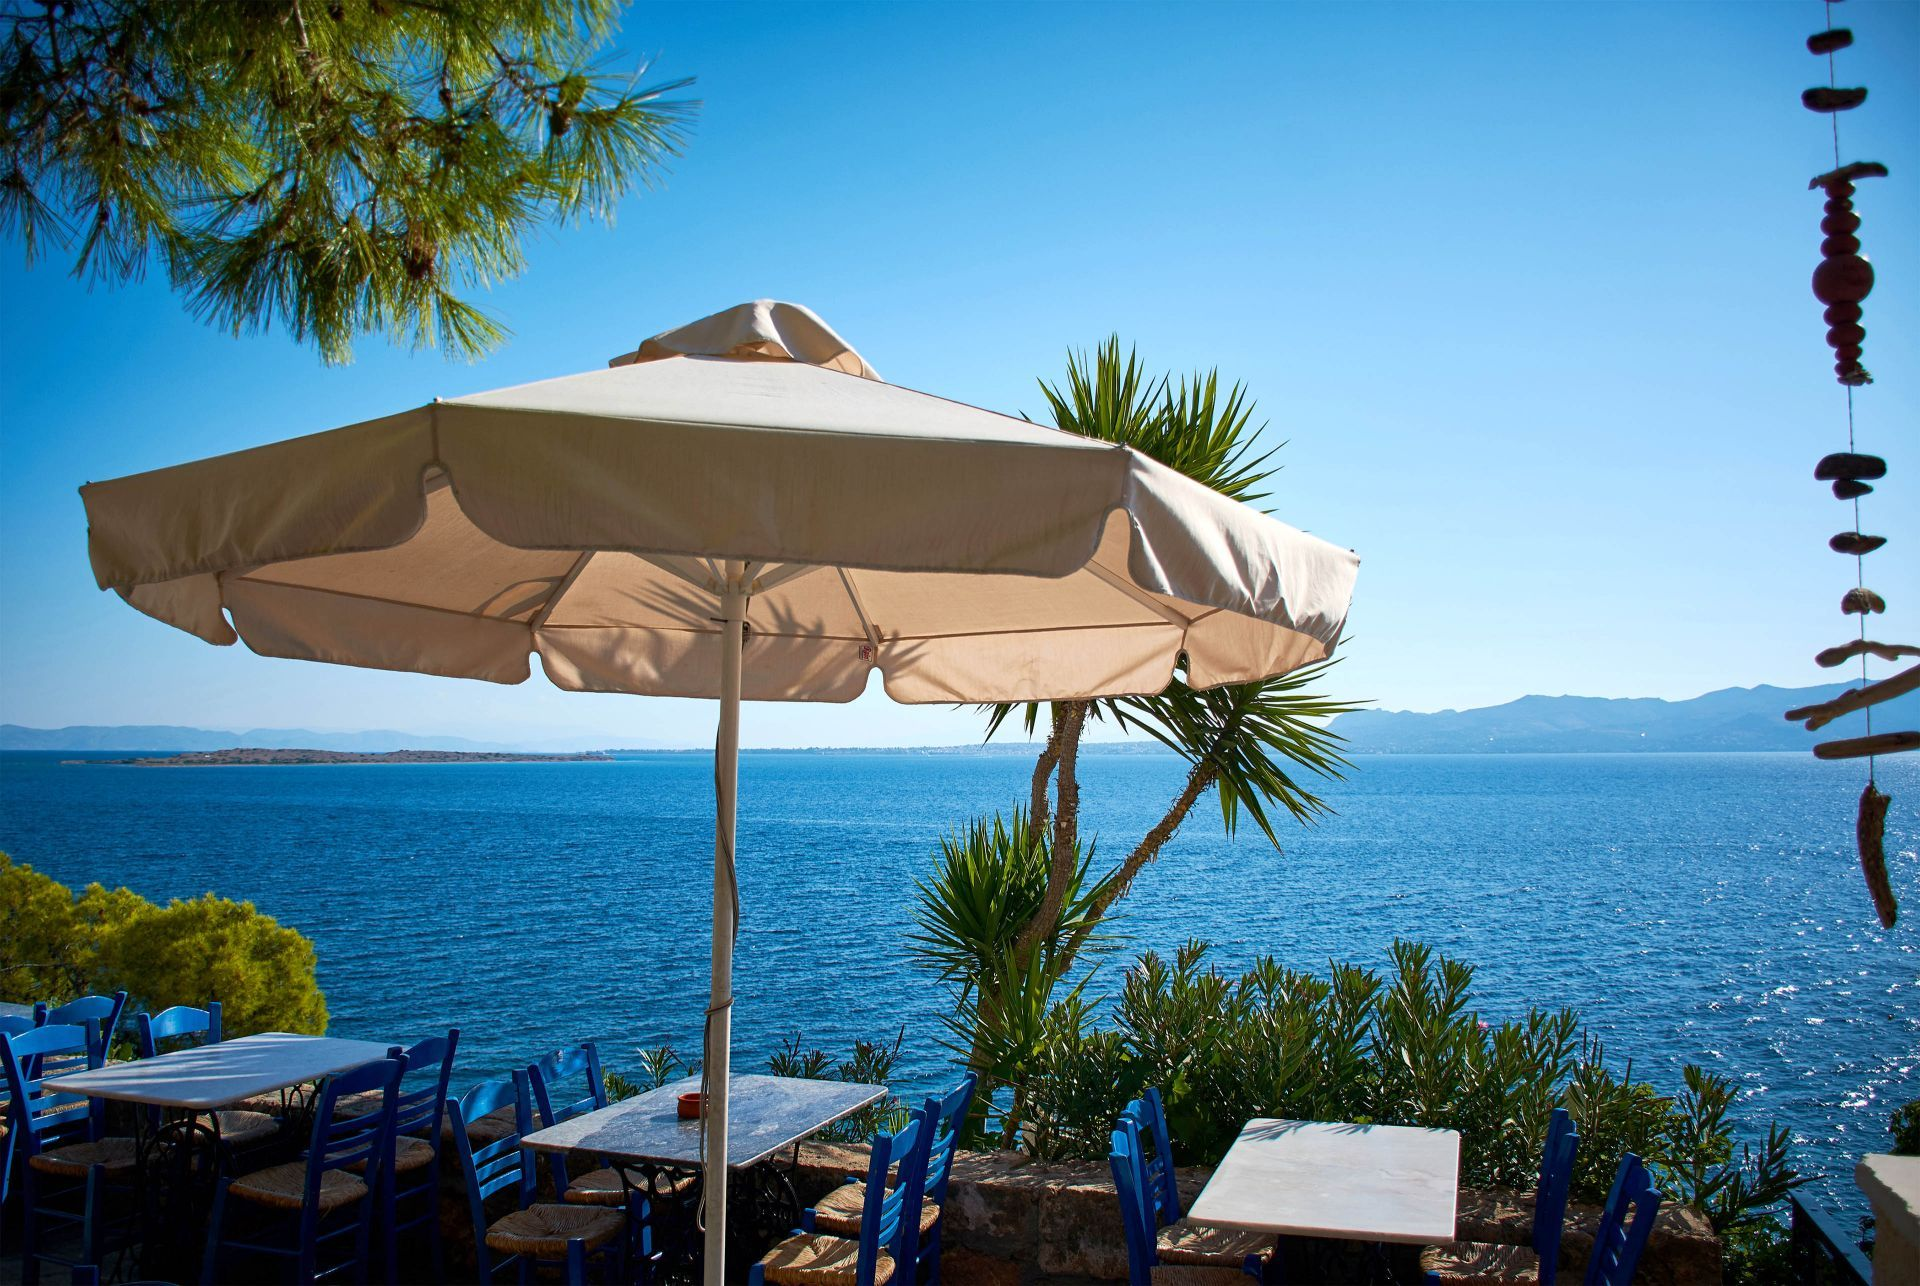 Places to eat and drink in Agistri